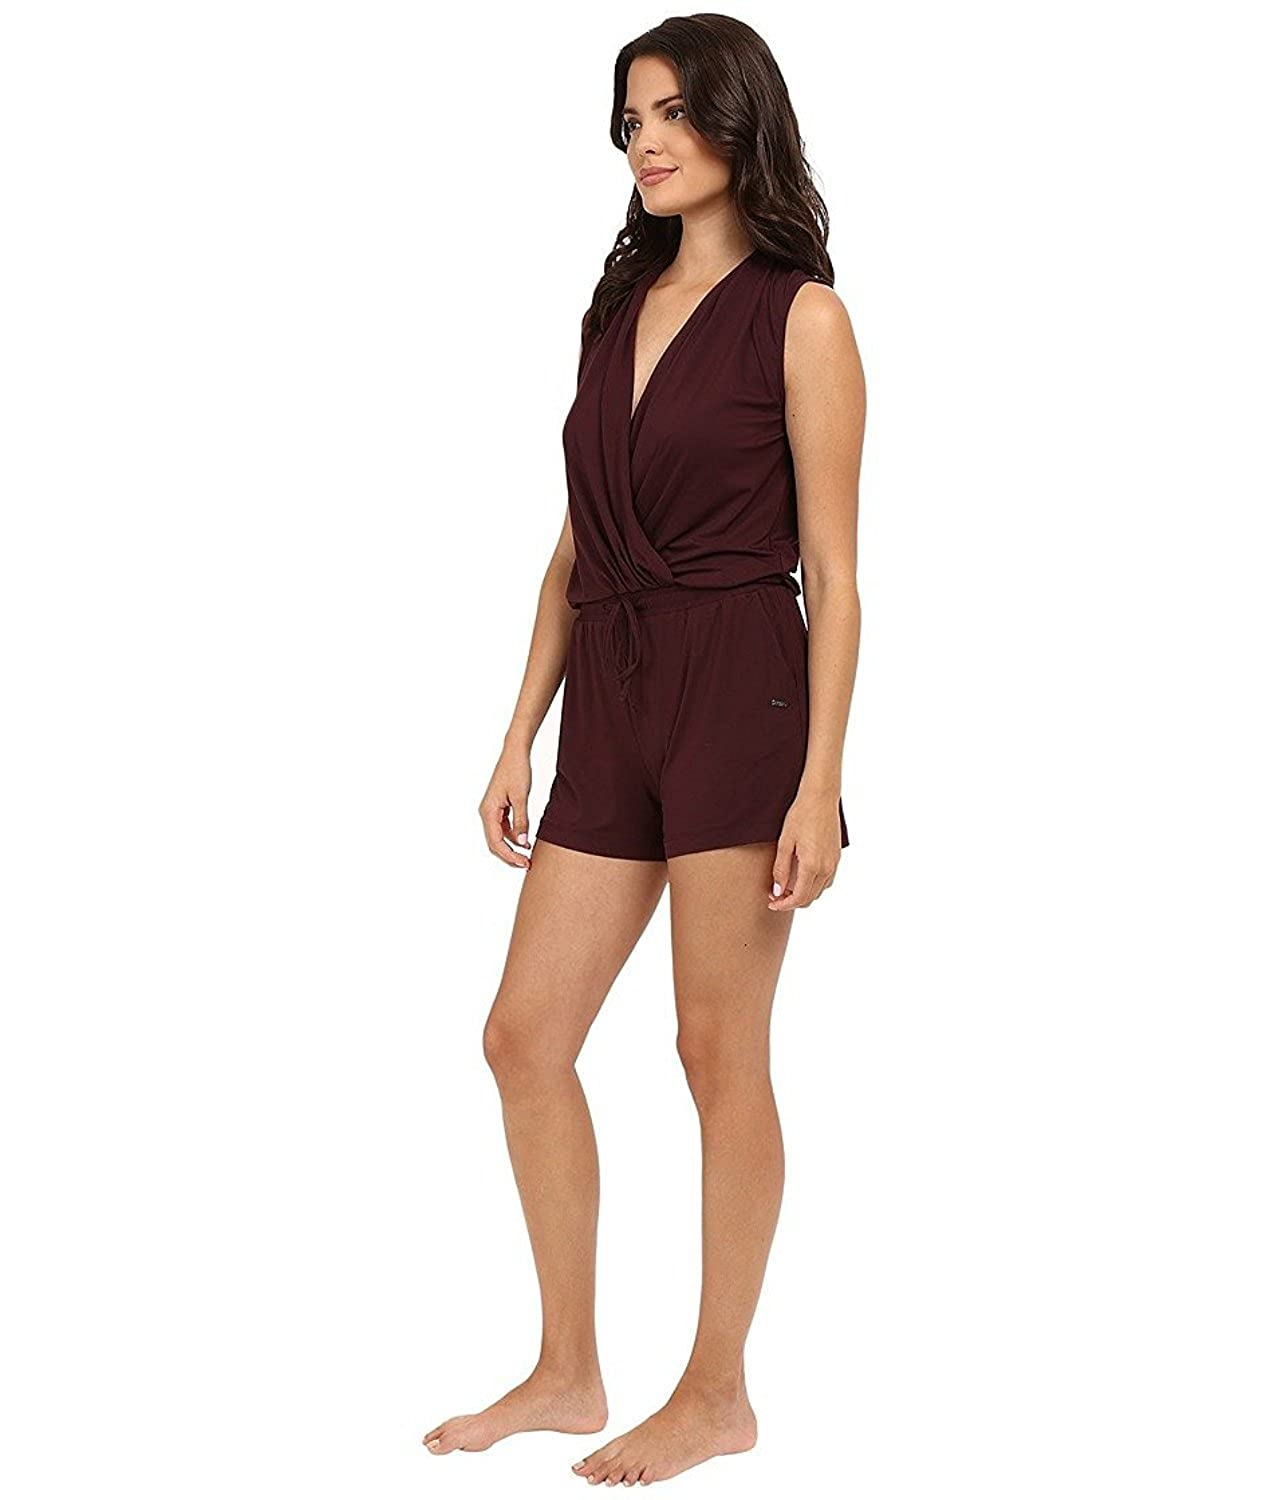 7ade19ab724f UGG Women s Kami Lounge Romper Black Cherry Jumpsuit  Amazon.co.uk  Clothing